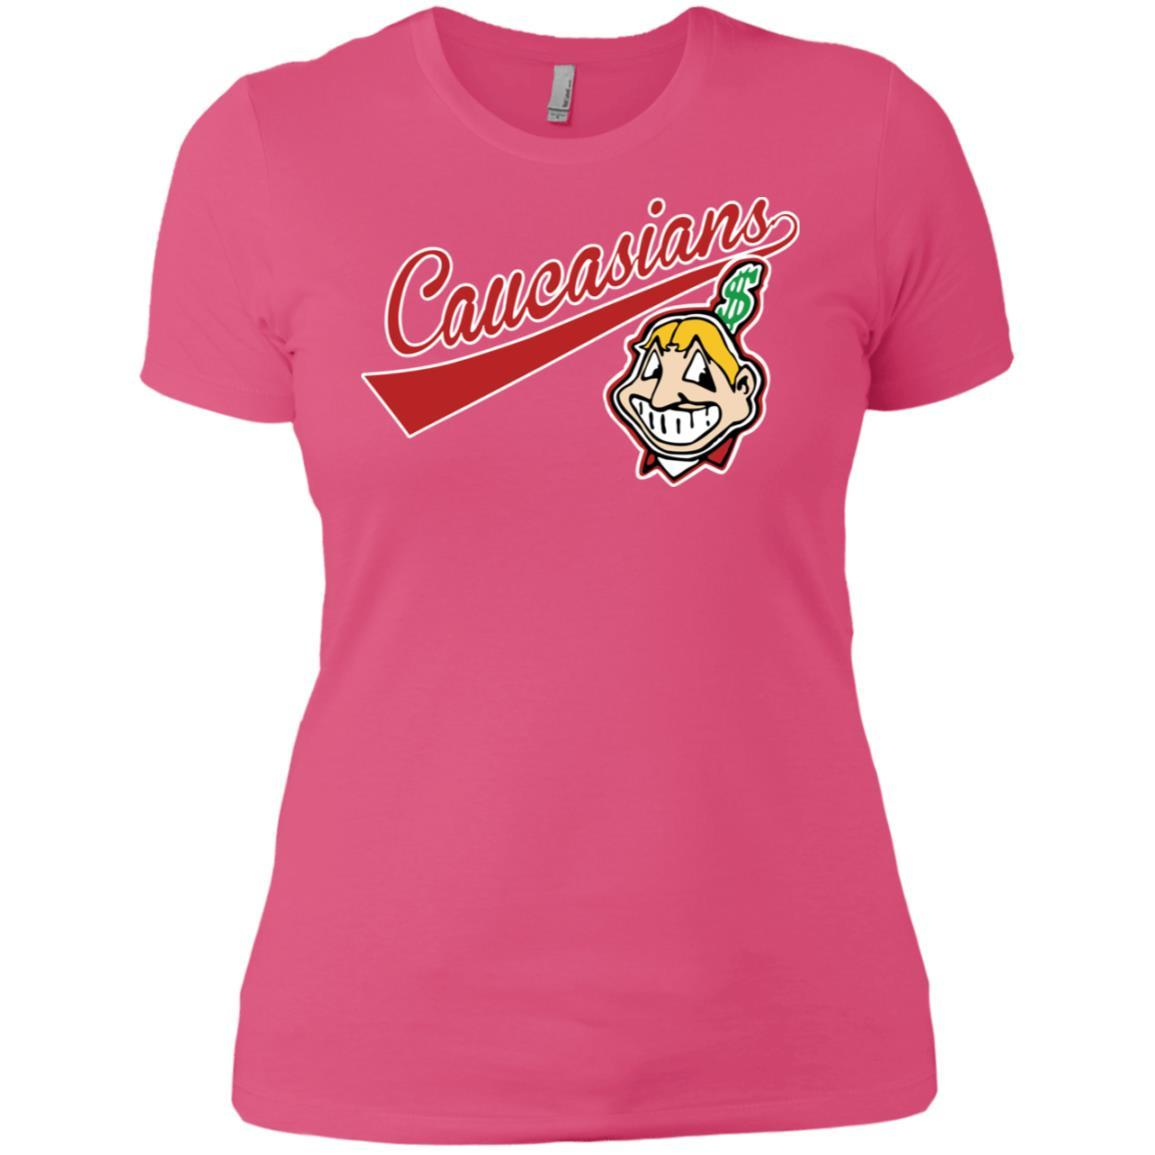 Cleveland Caucasians Native Go Indians - Ladies' Boyfriend T-Shirt Hot Pink / 3XL